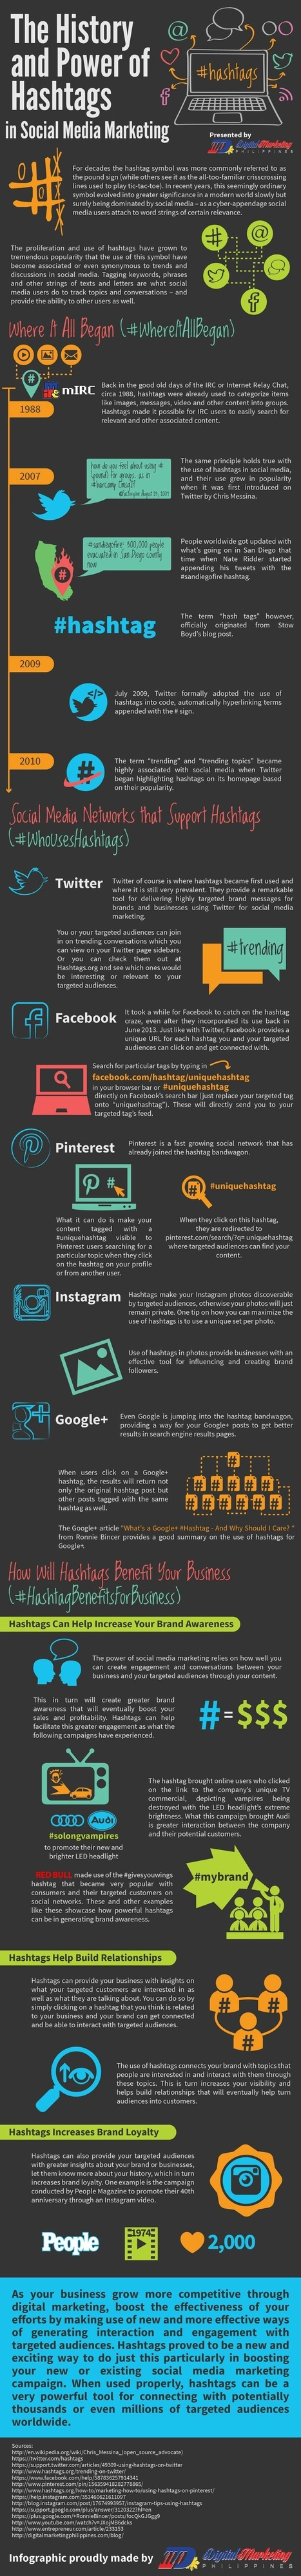 The History of Hashtags in Social Media Marketing [INFOGRAPHIC] | MarketingHits | Scoop.it